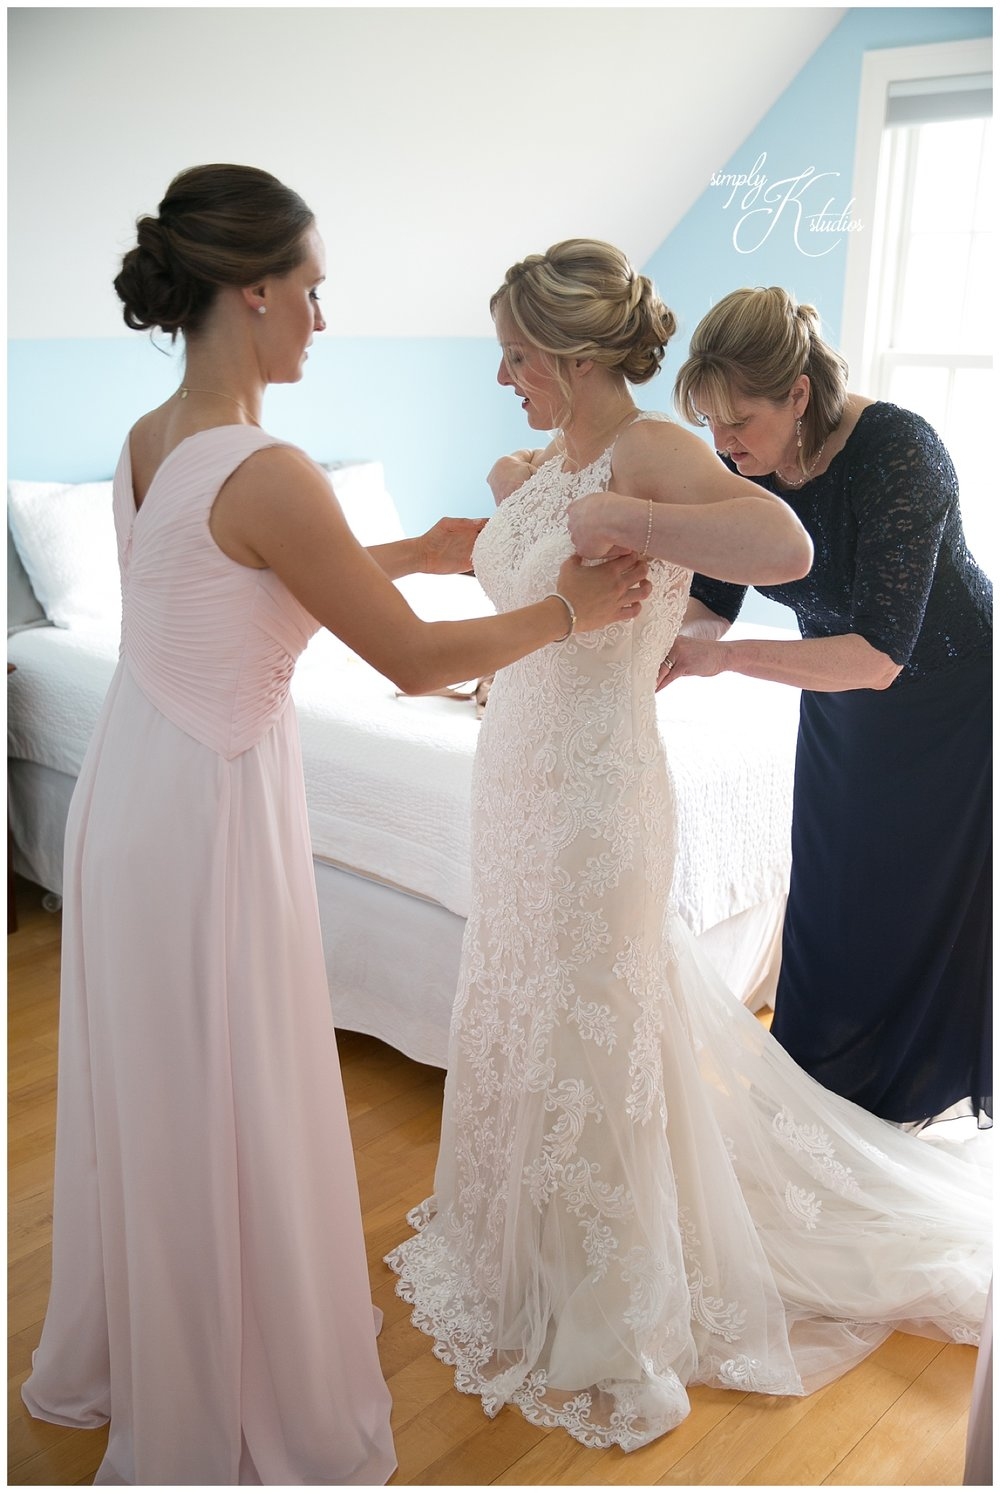 Bride Getting Ready Photos.jpg